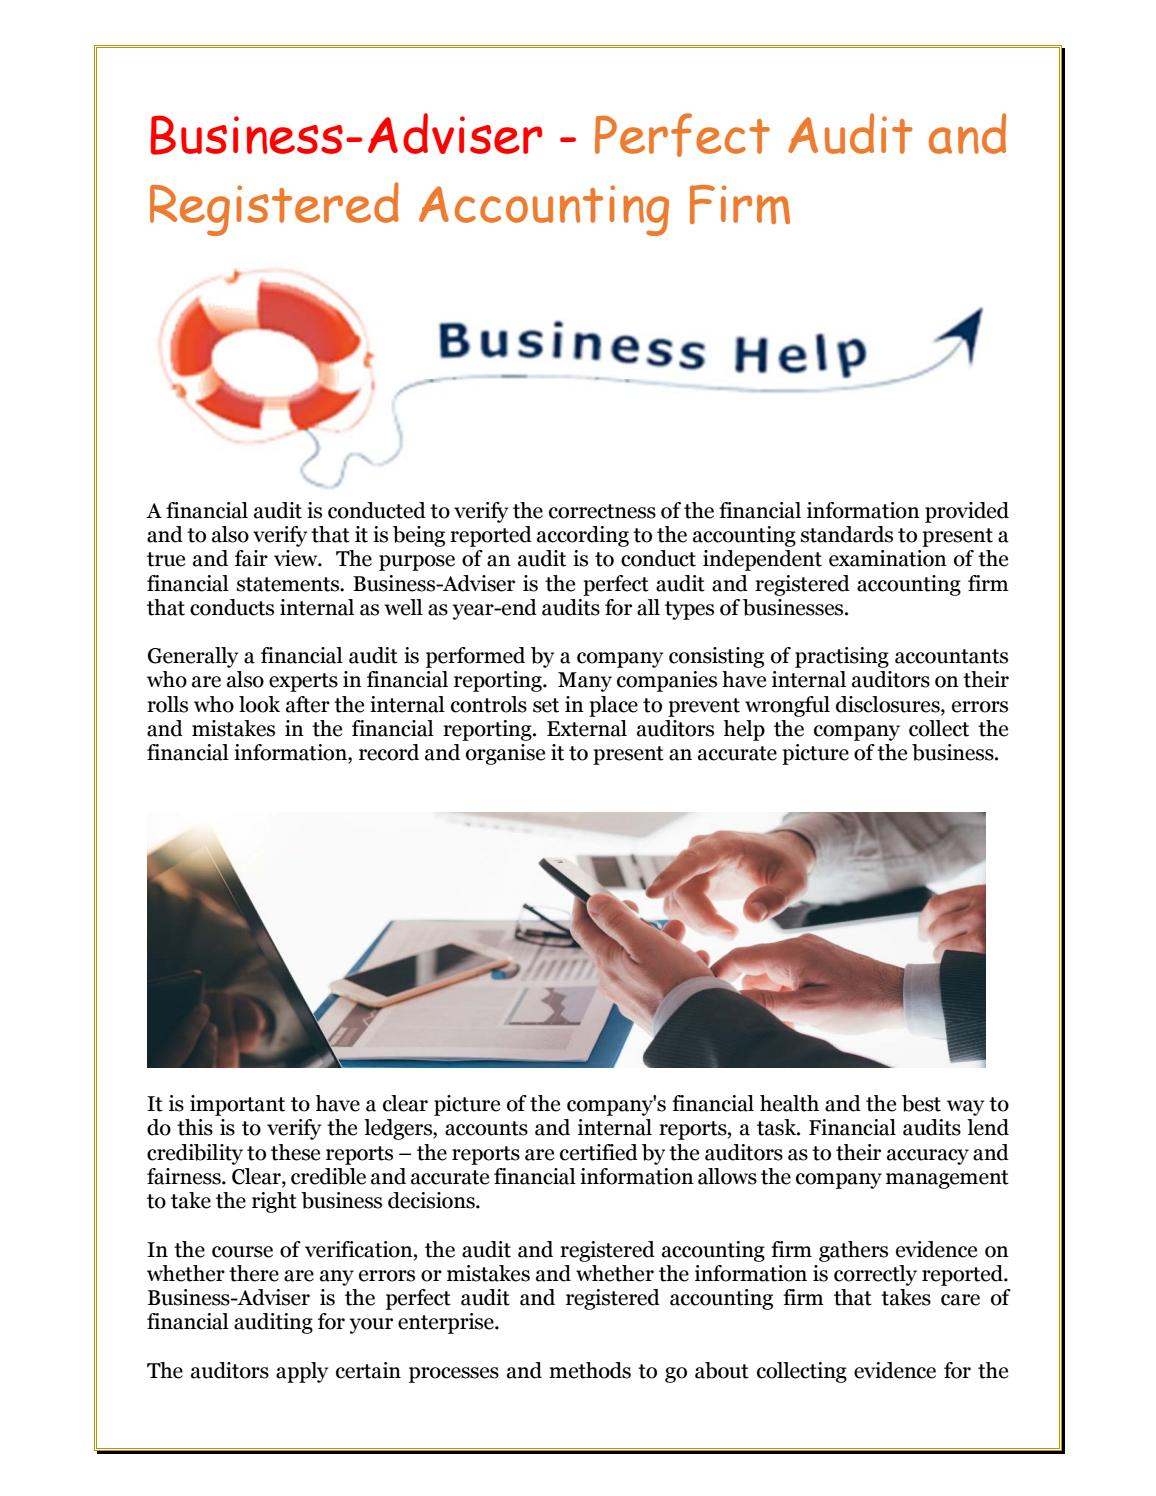 Business adviser perfect audit and registered accounting